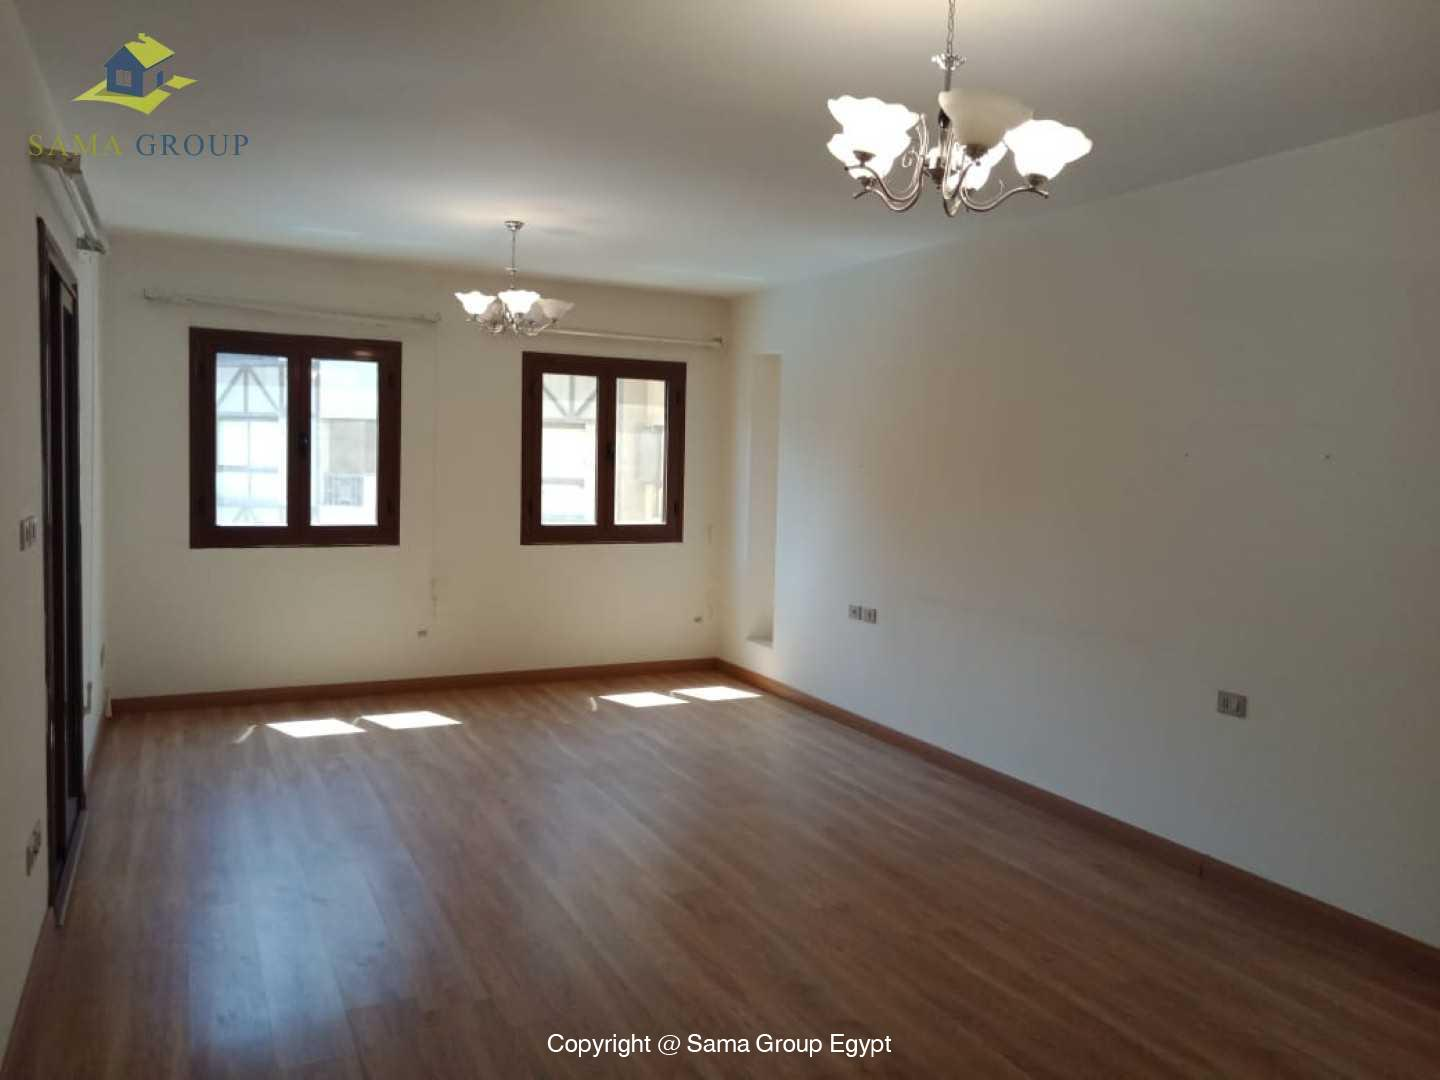 Semi Furnished Apartment For Rent In Maadi Sarayat,Semi furnished,Apartment NO #4